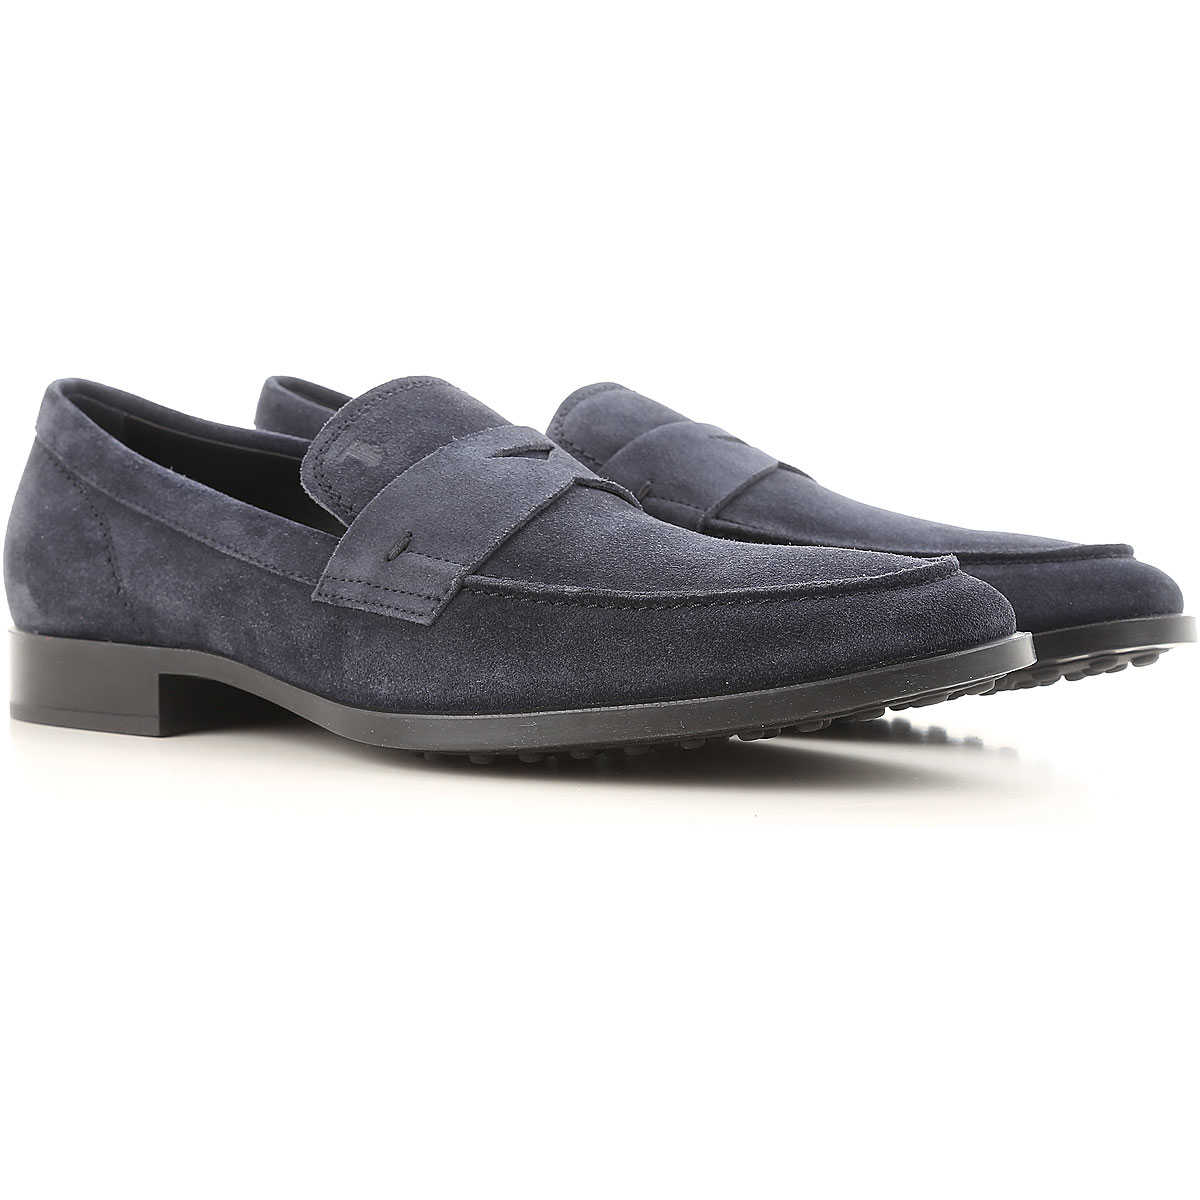 Tods Loafers for Men Midnight Blue USA - GOOFASH